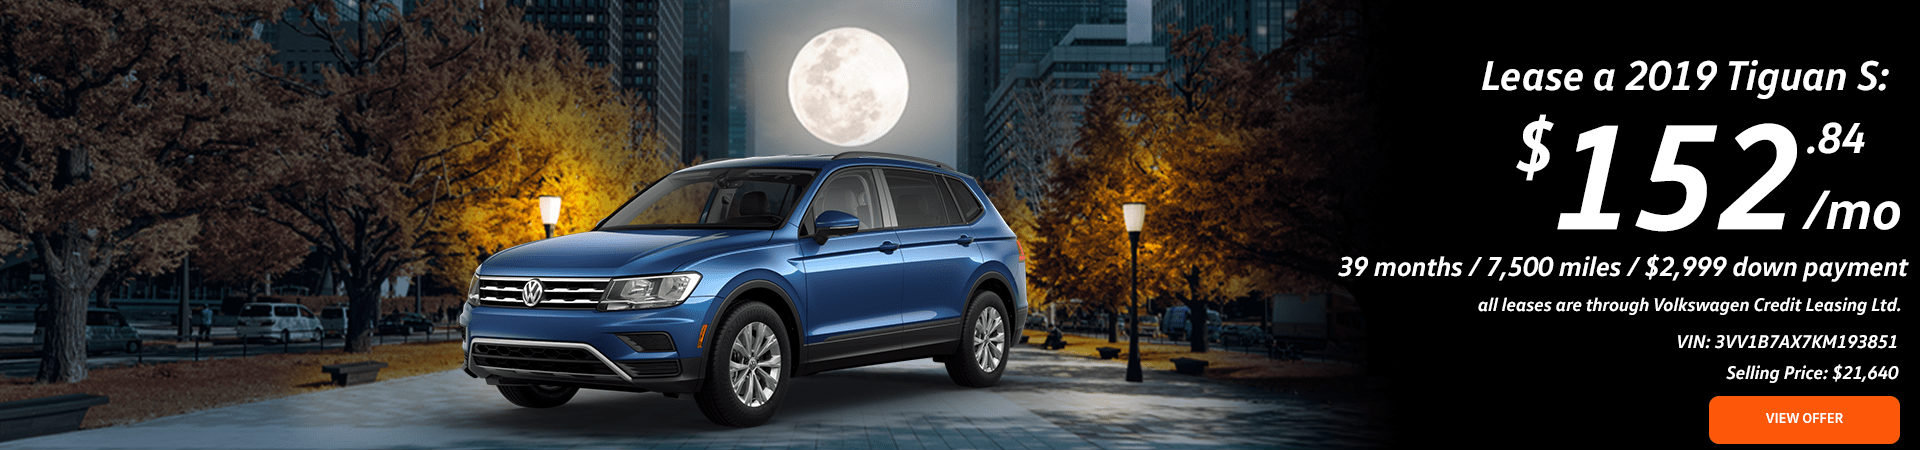 Details of 2019 Volkswagen Tiguan S Lease Special and an image of a full moon over a blue 2019 Volkswagen Tiguan S